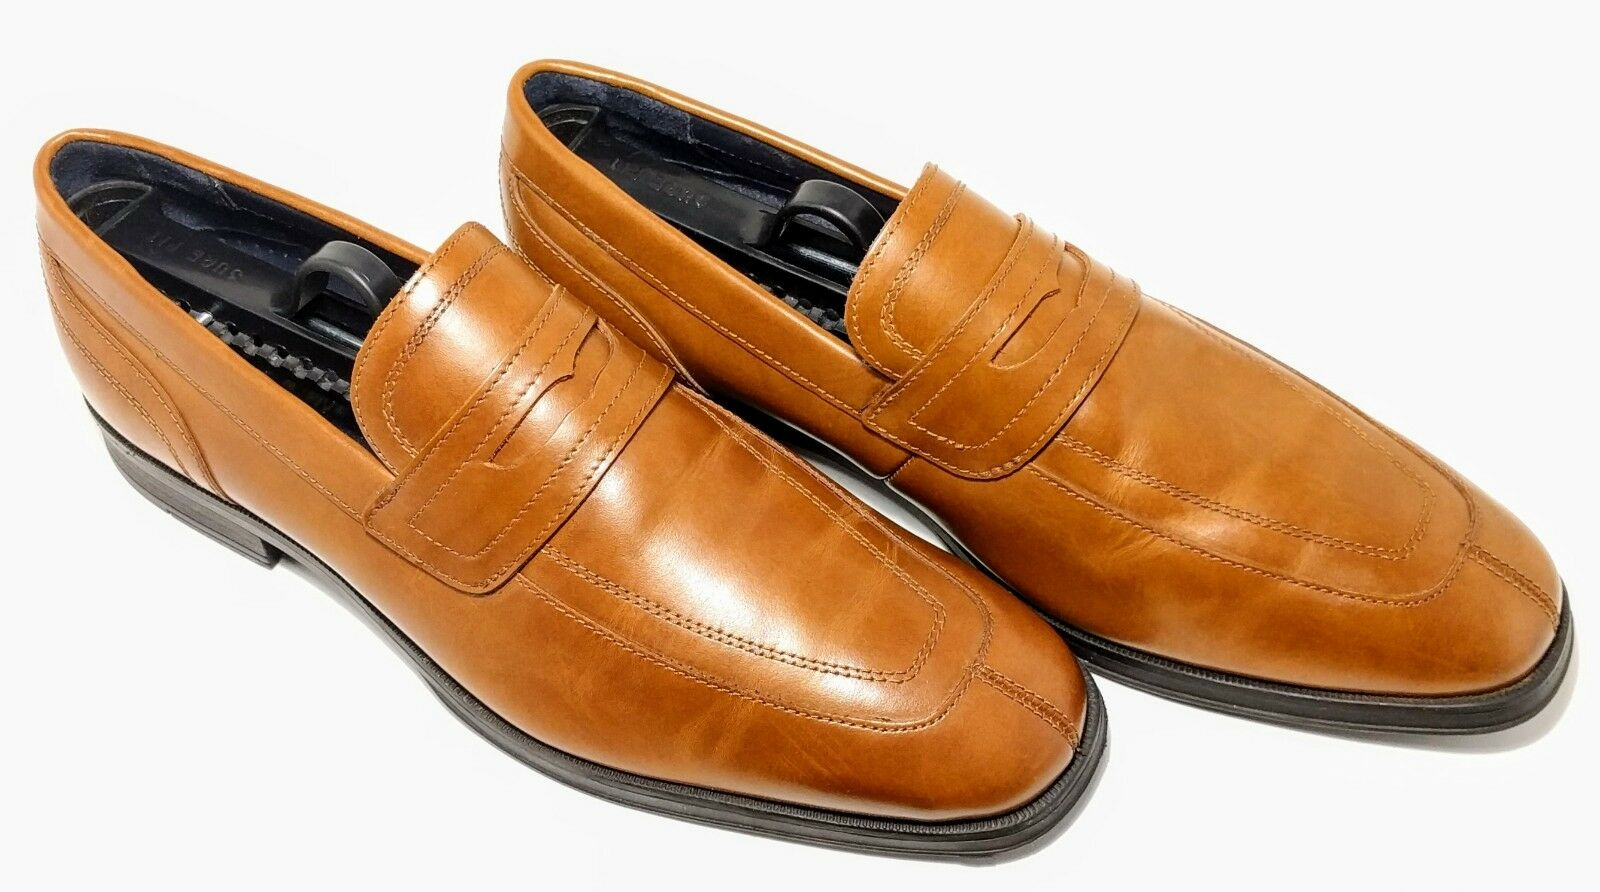 Cole Haan Montgomery Signature Men's Brown Leather Penny Loafers Dress shoes 8M